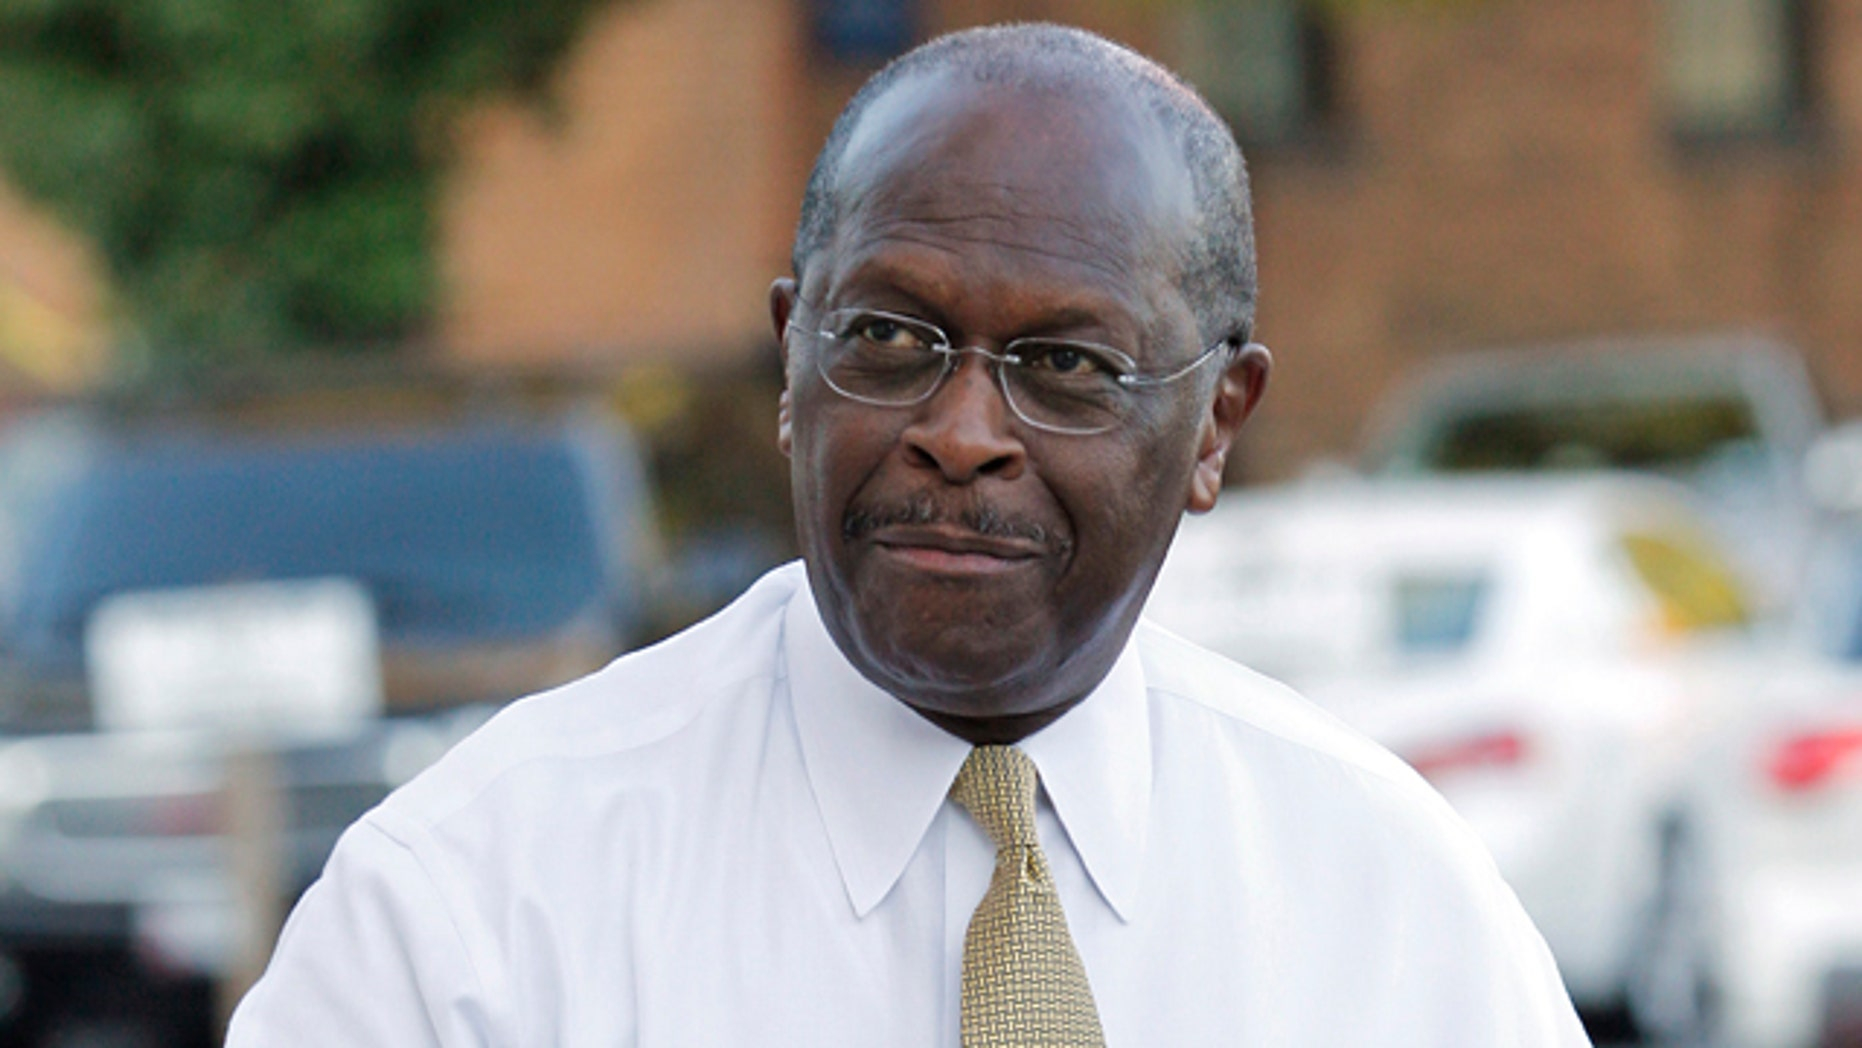 Oct. 16,  2011: Herman Cain arrives for a Sunday talk show interview.